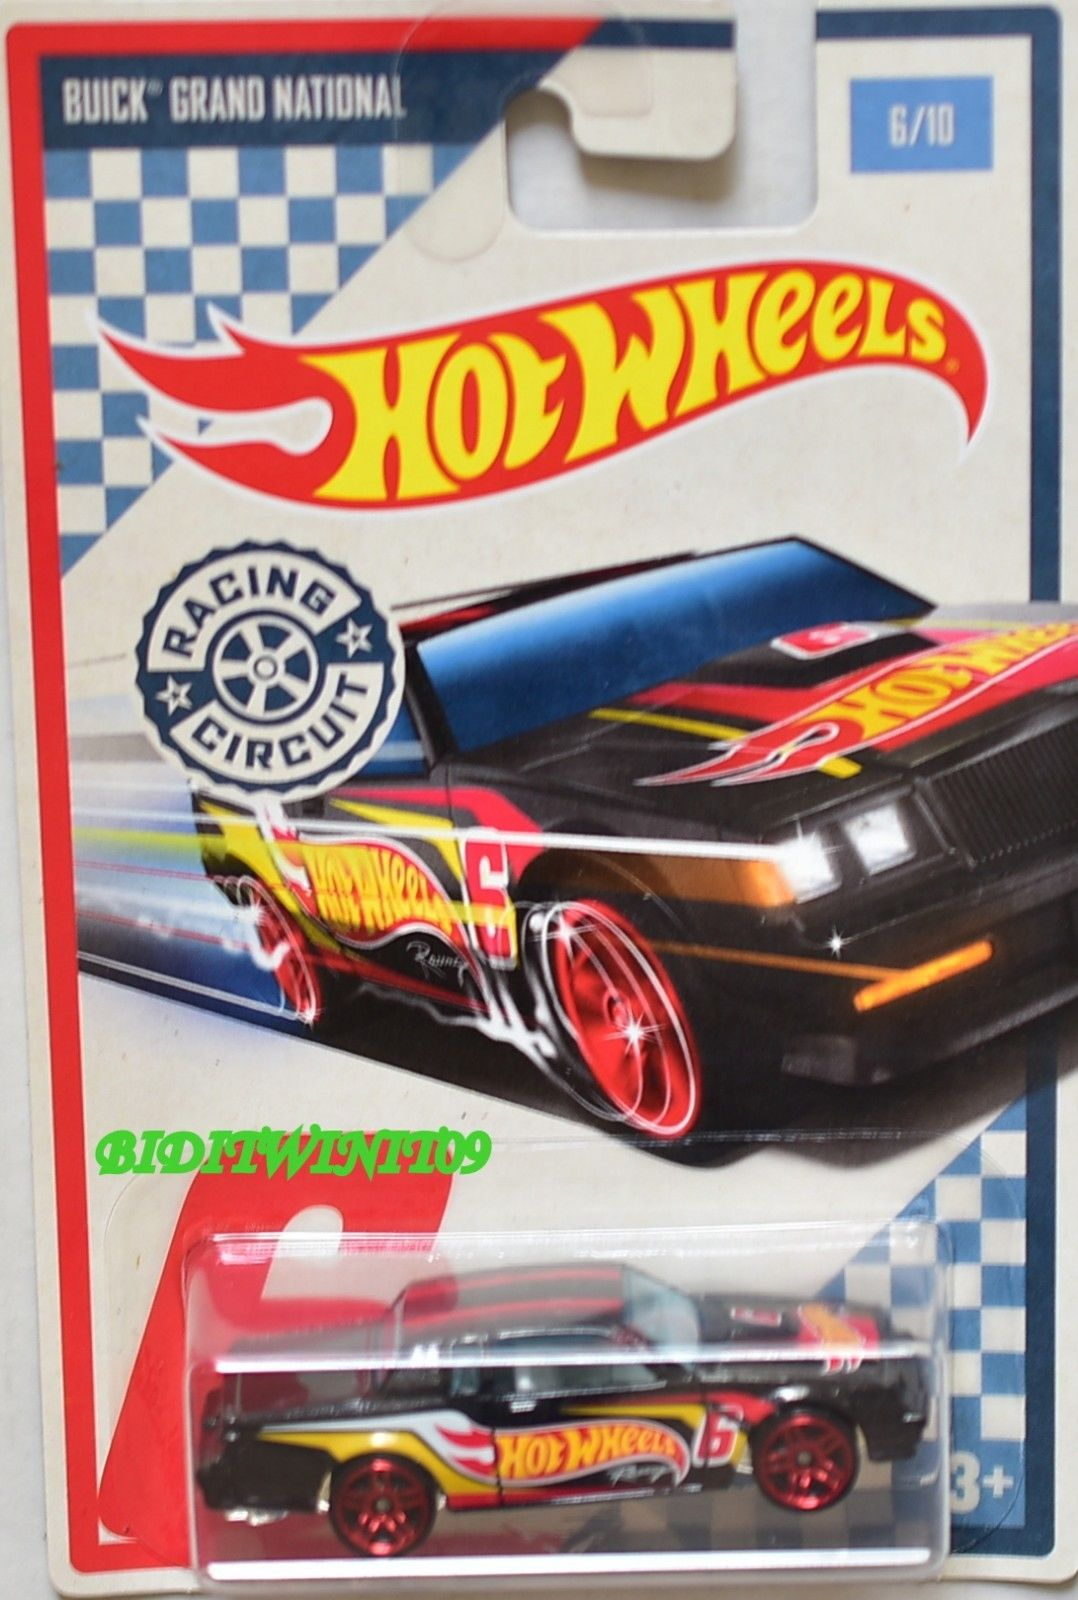 hot wheels racing circuit 6 10 buick grand national 0001949. Black Bedroom Furniture Sets. Home Design Ideas